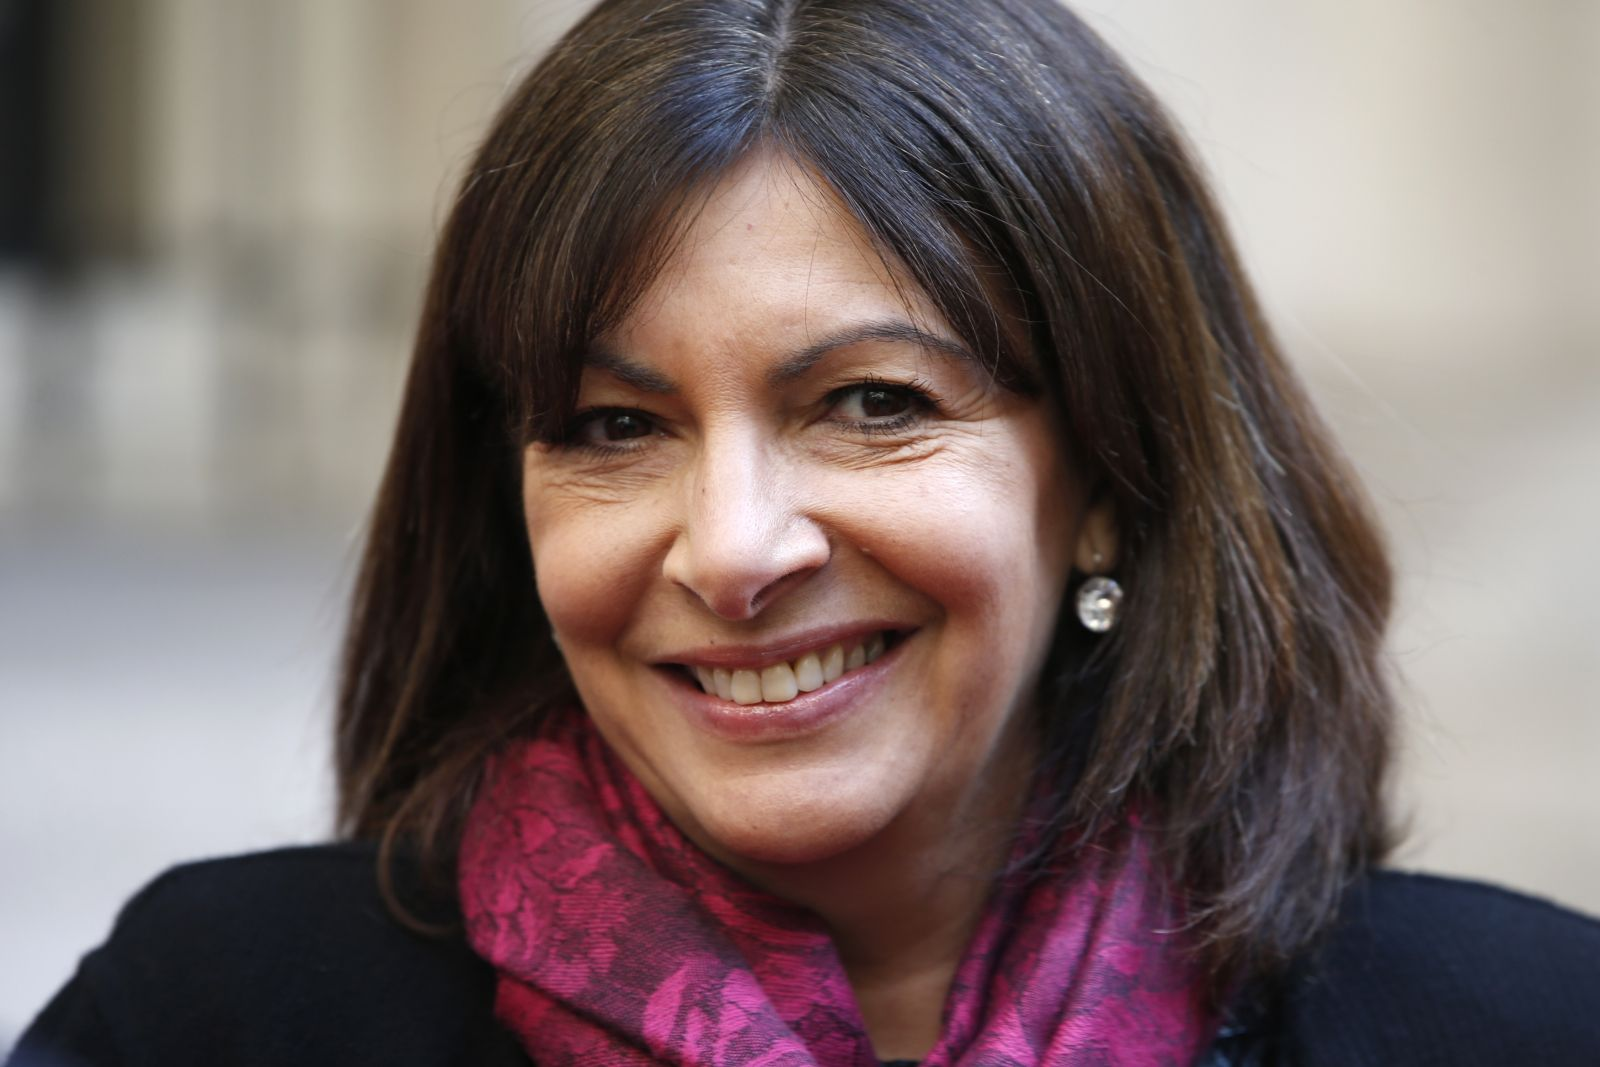 Anne Hidalgo Paris mayor